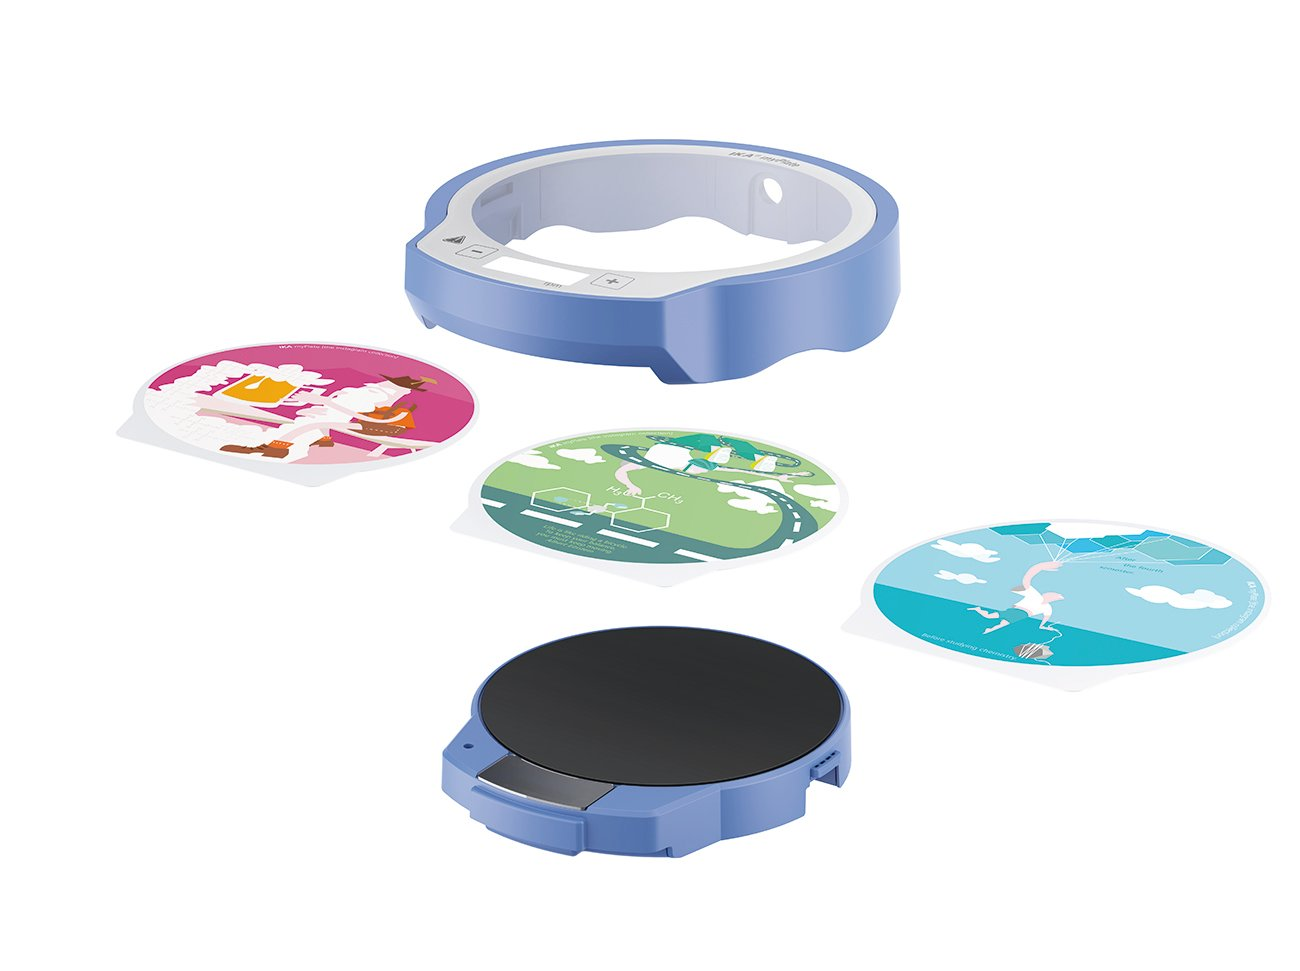 IKA myPlate magnetic stirrer in different designs